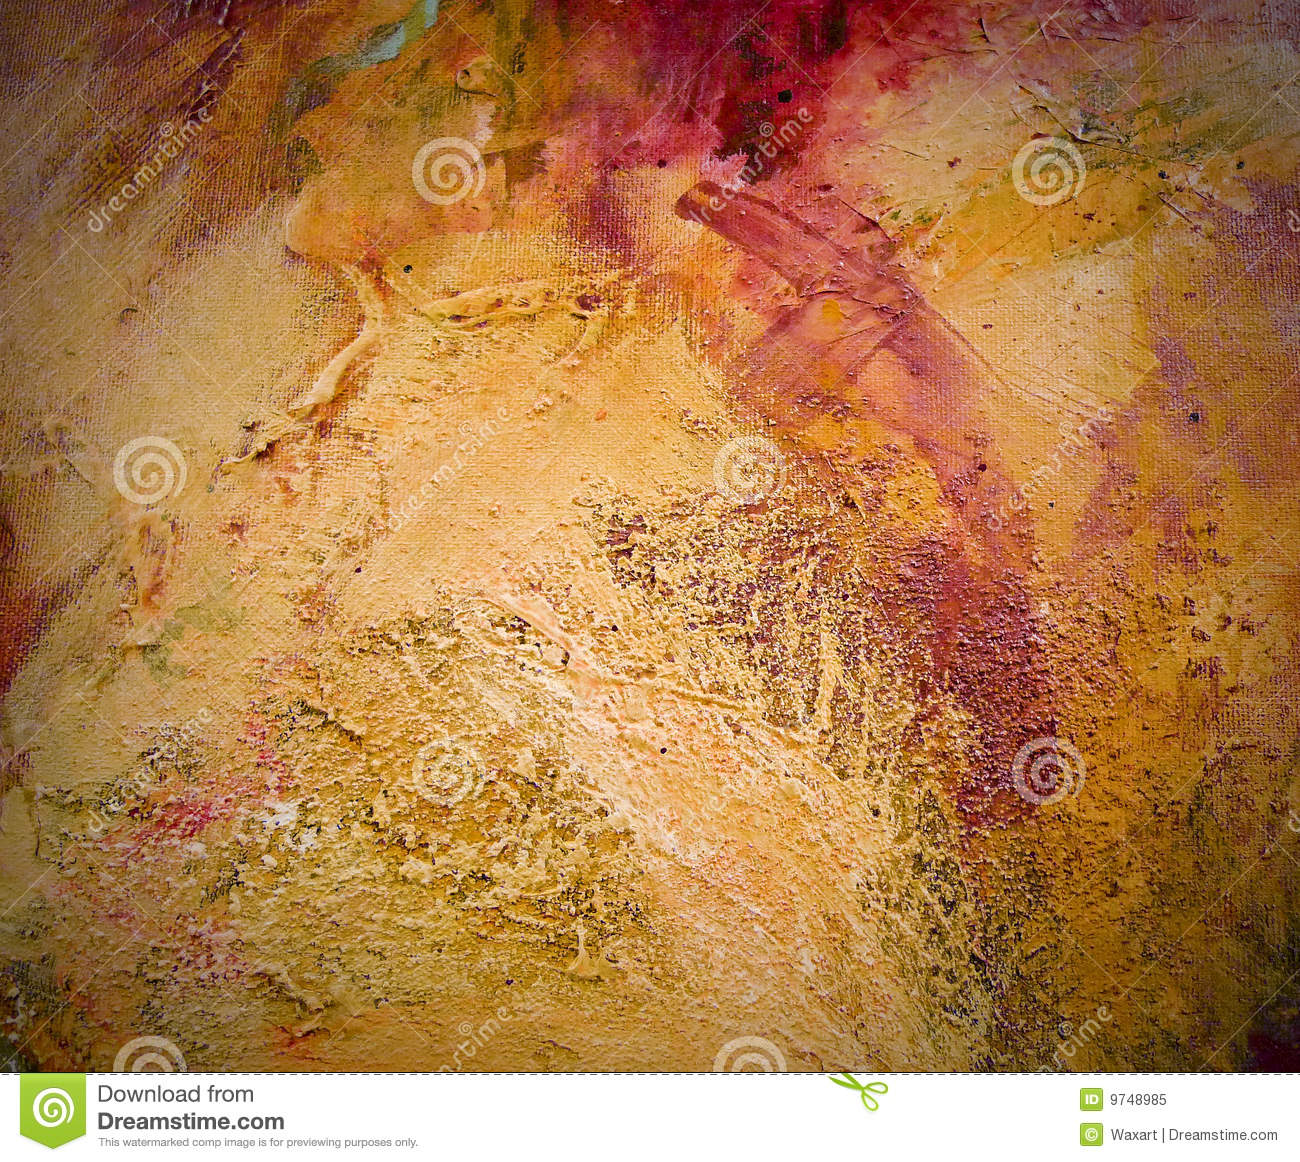 Highly Textured Abstract Painting On Canvas Stock Image Image of